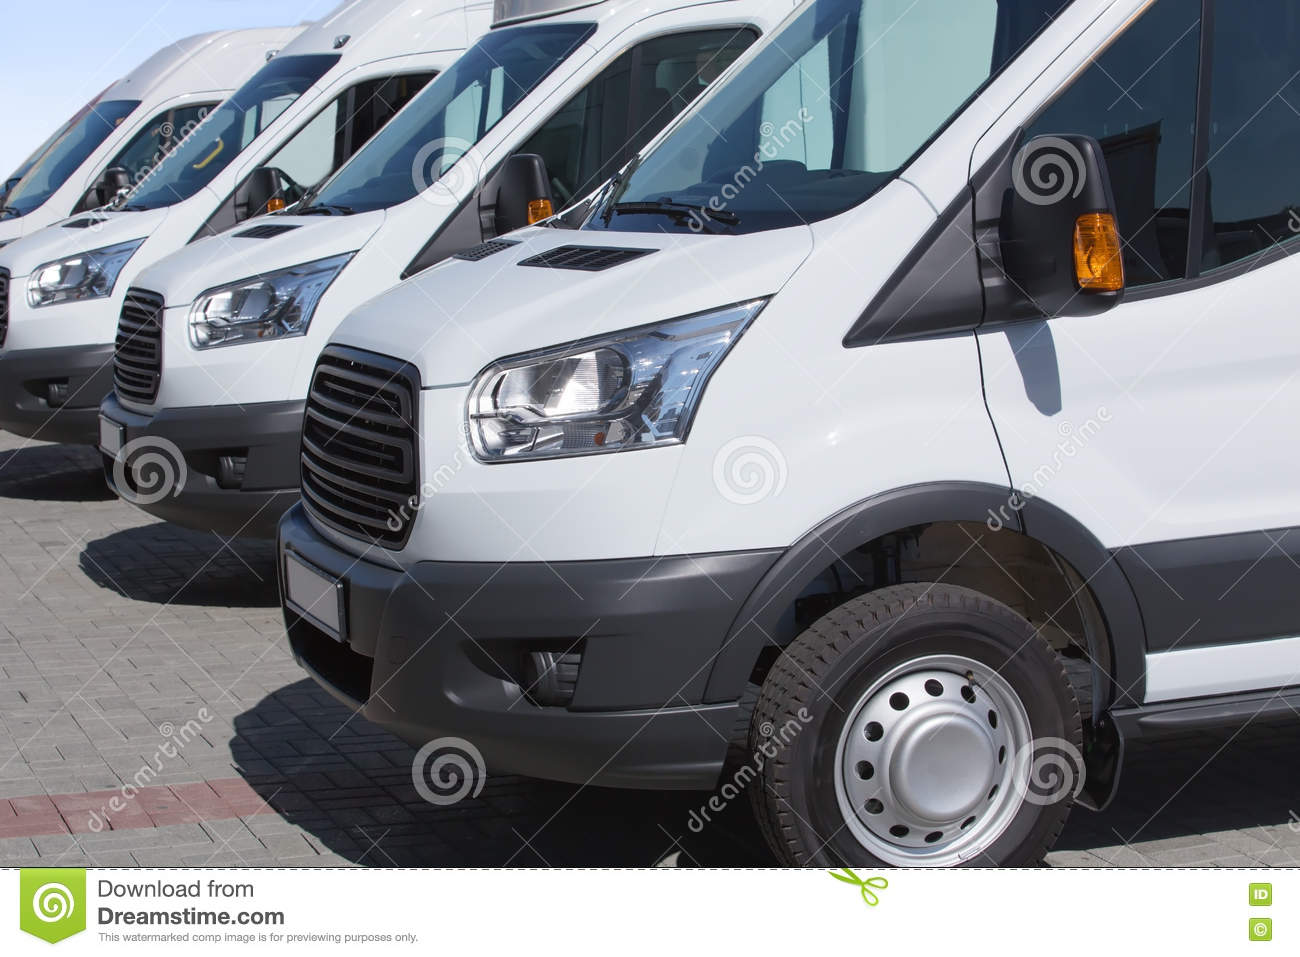 f7622c97bc Minibuses and vans outside stock image. Image of sales - 74476729